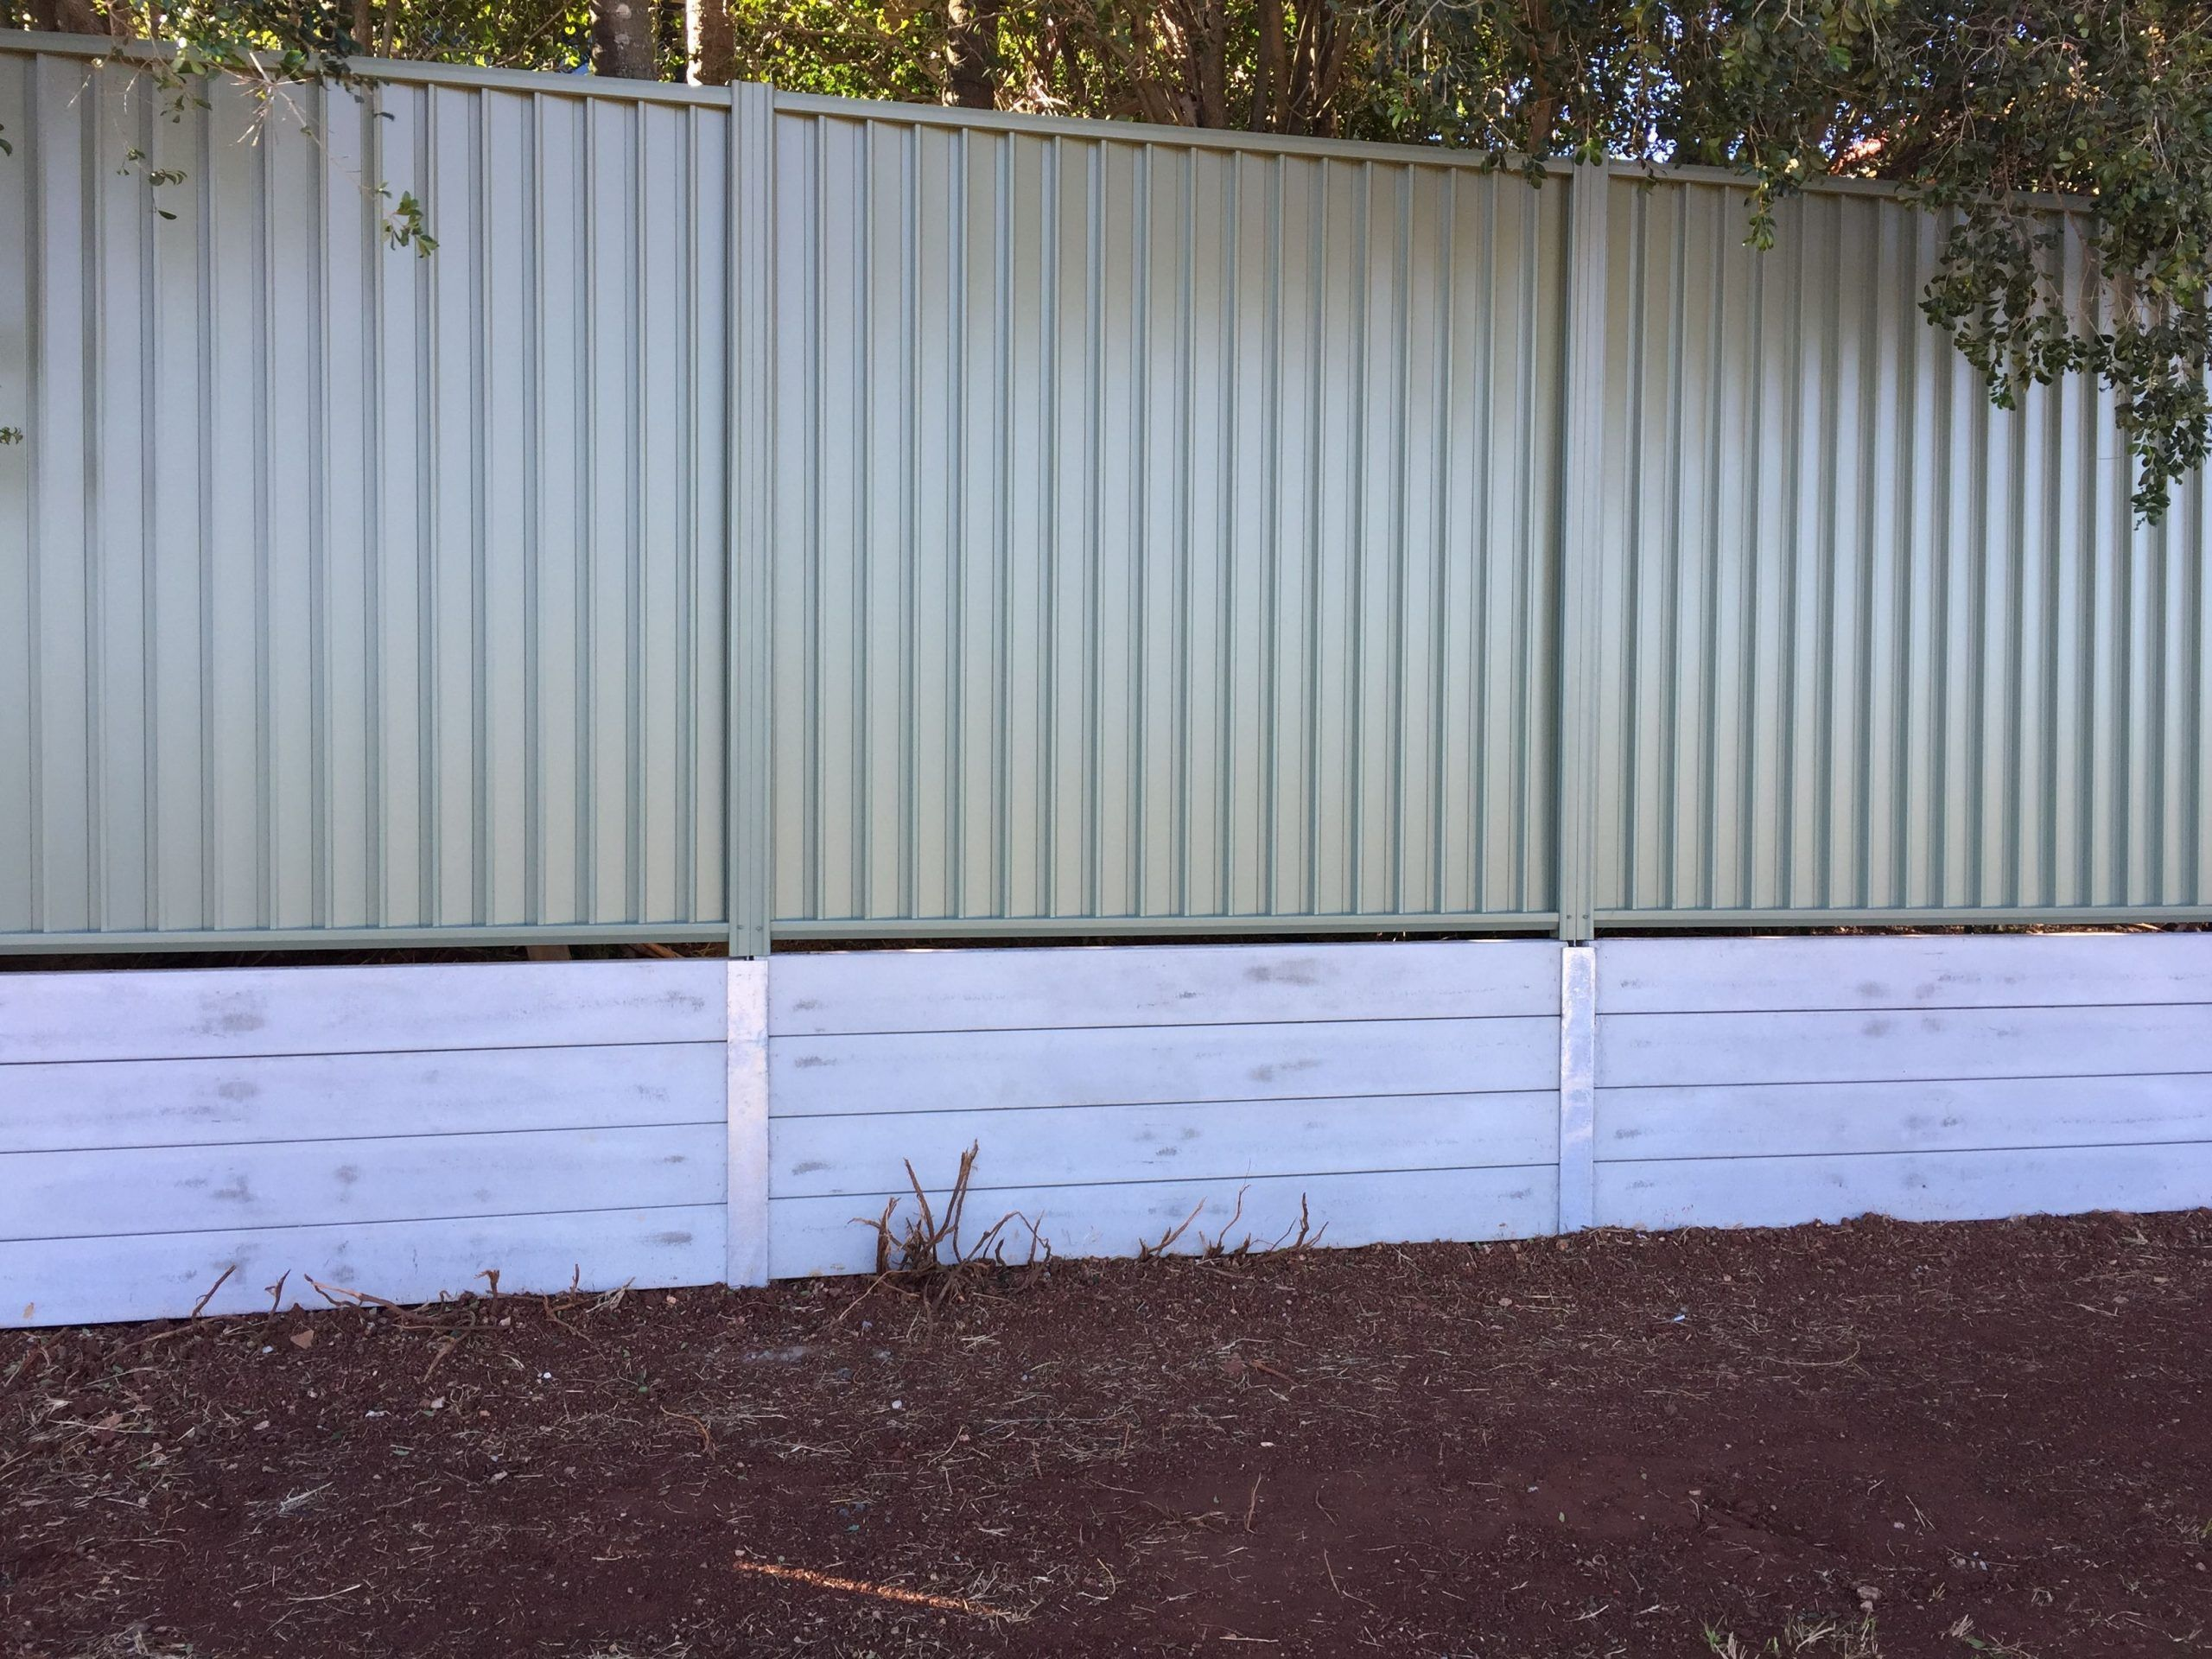 Recently Completed Northbond Colourbond Fencing And Concrete Sleeper Retaining W Colourbond In 2020 Concrete Retaining Walls Concrete Fence Panels Concrete Sleepers